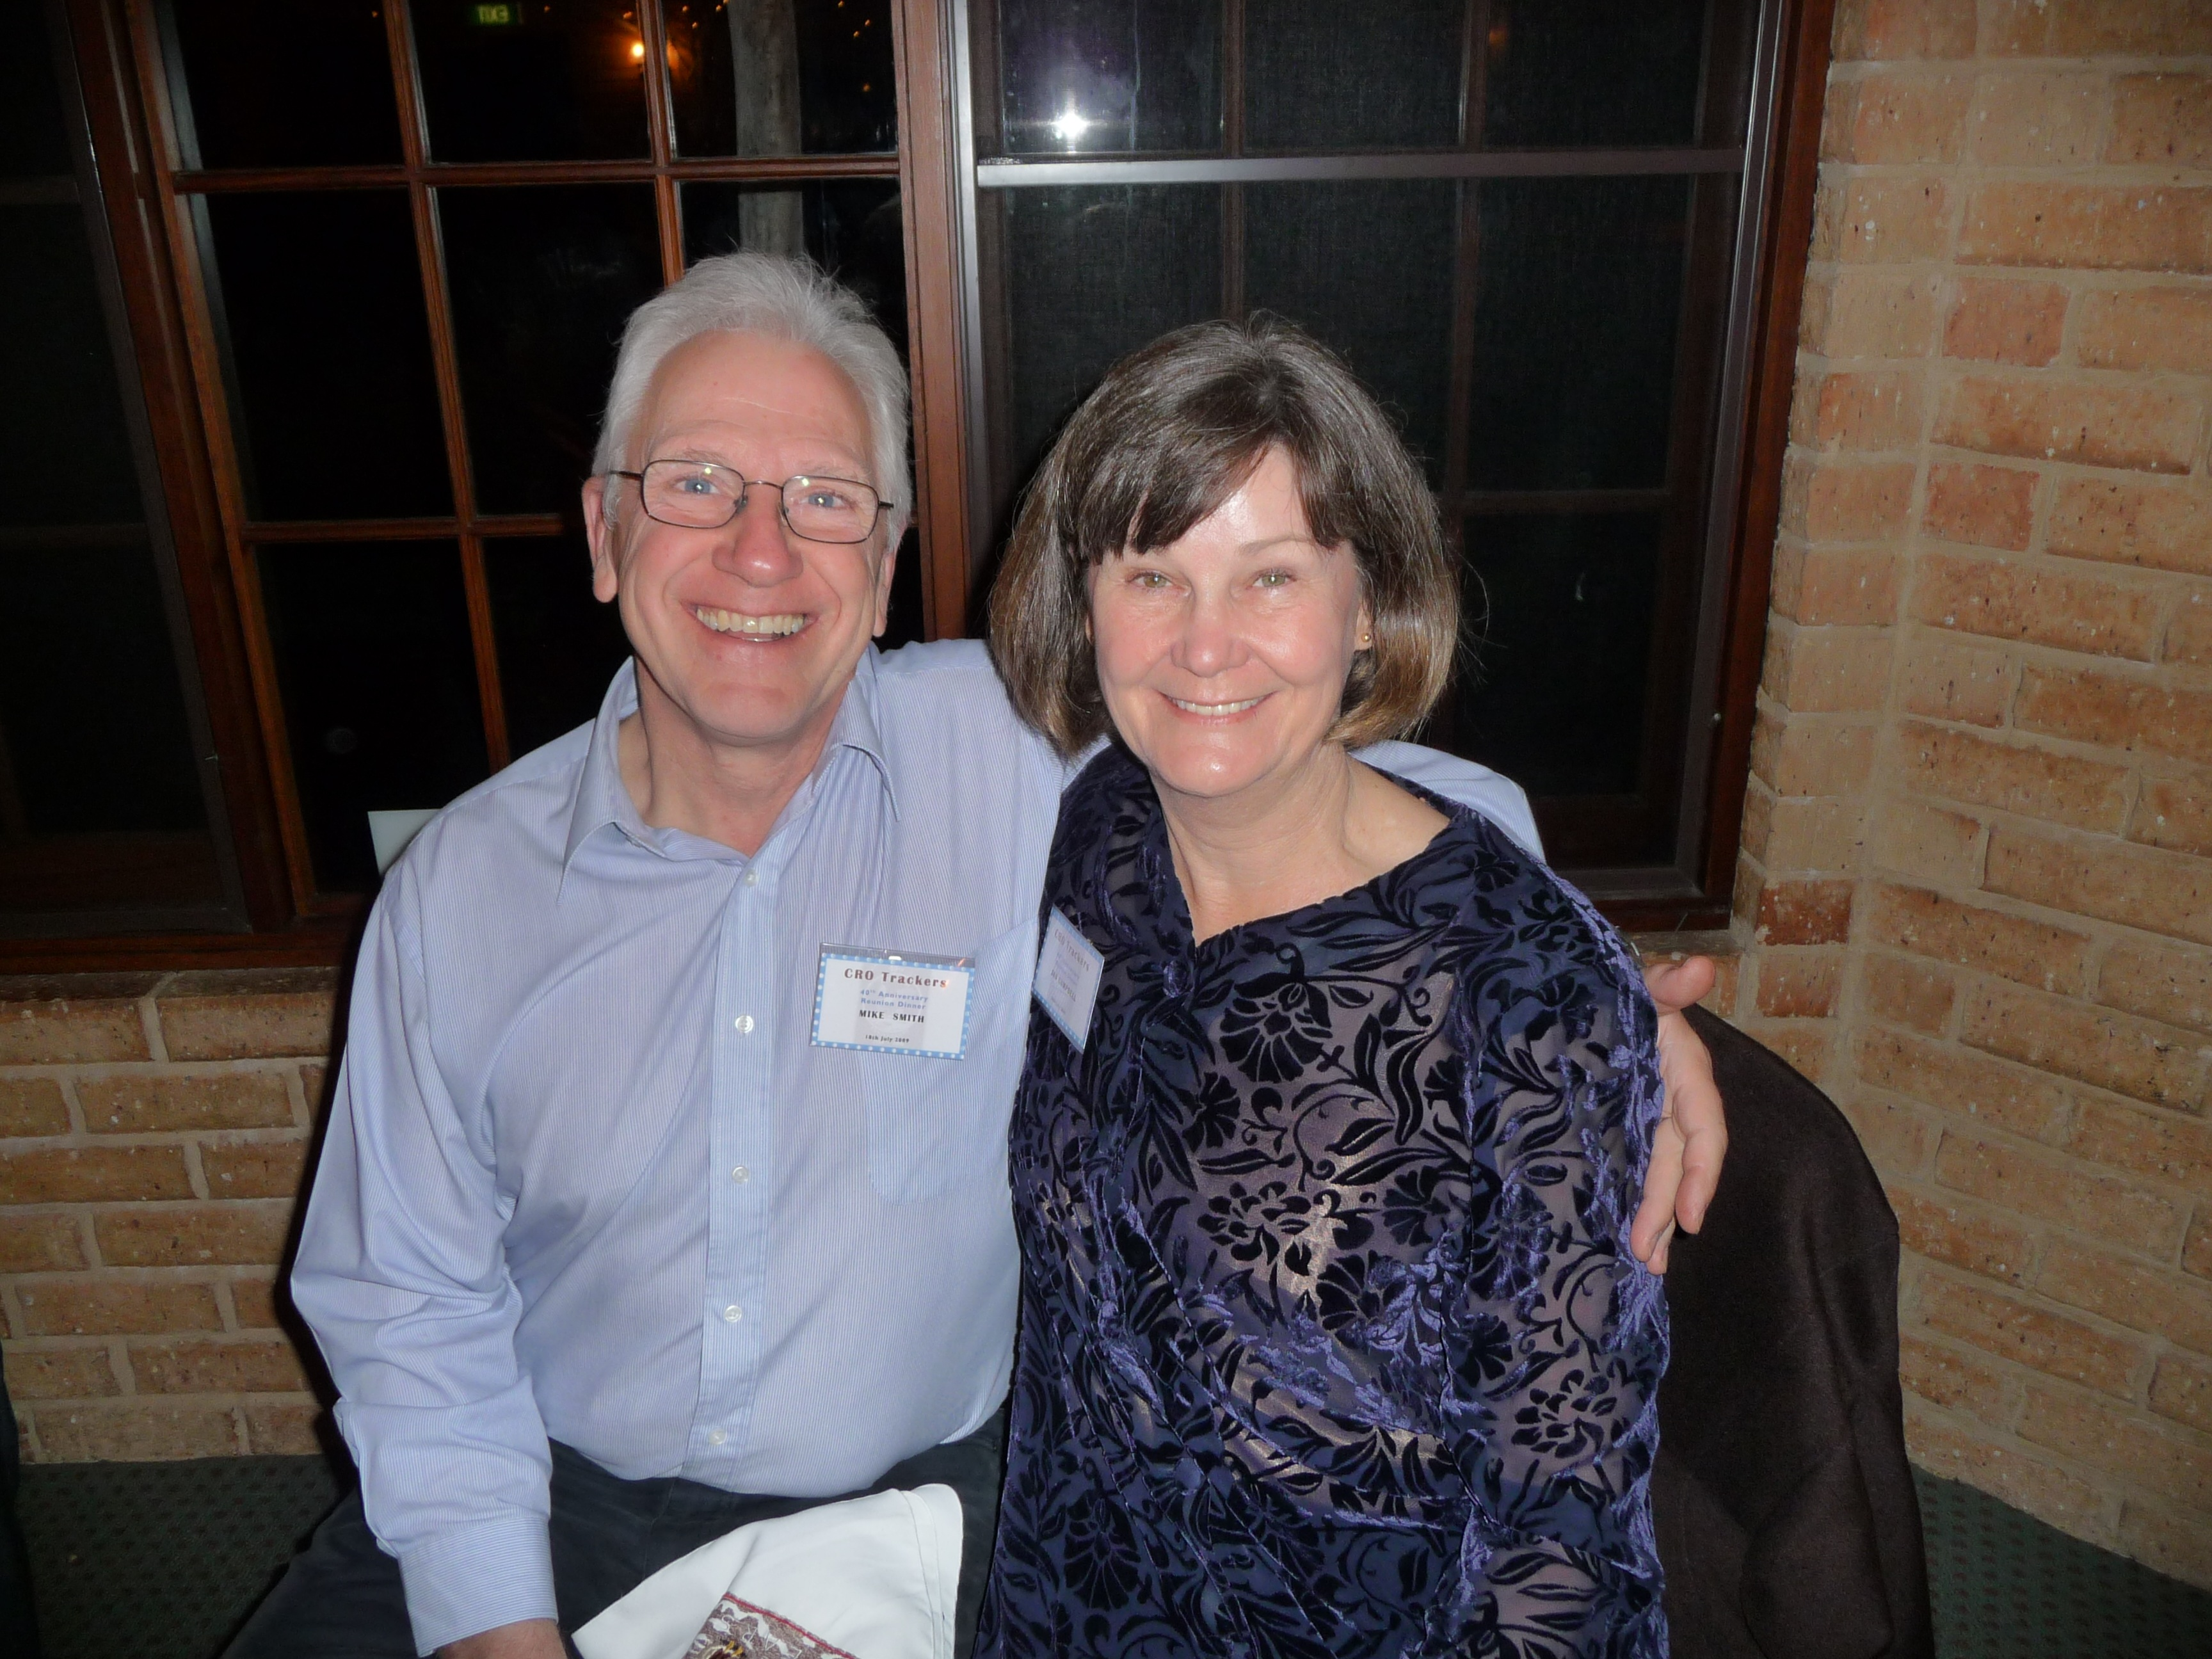 Mike Smith & Jan Campbell